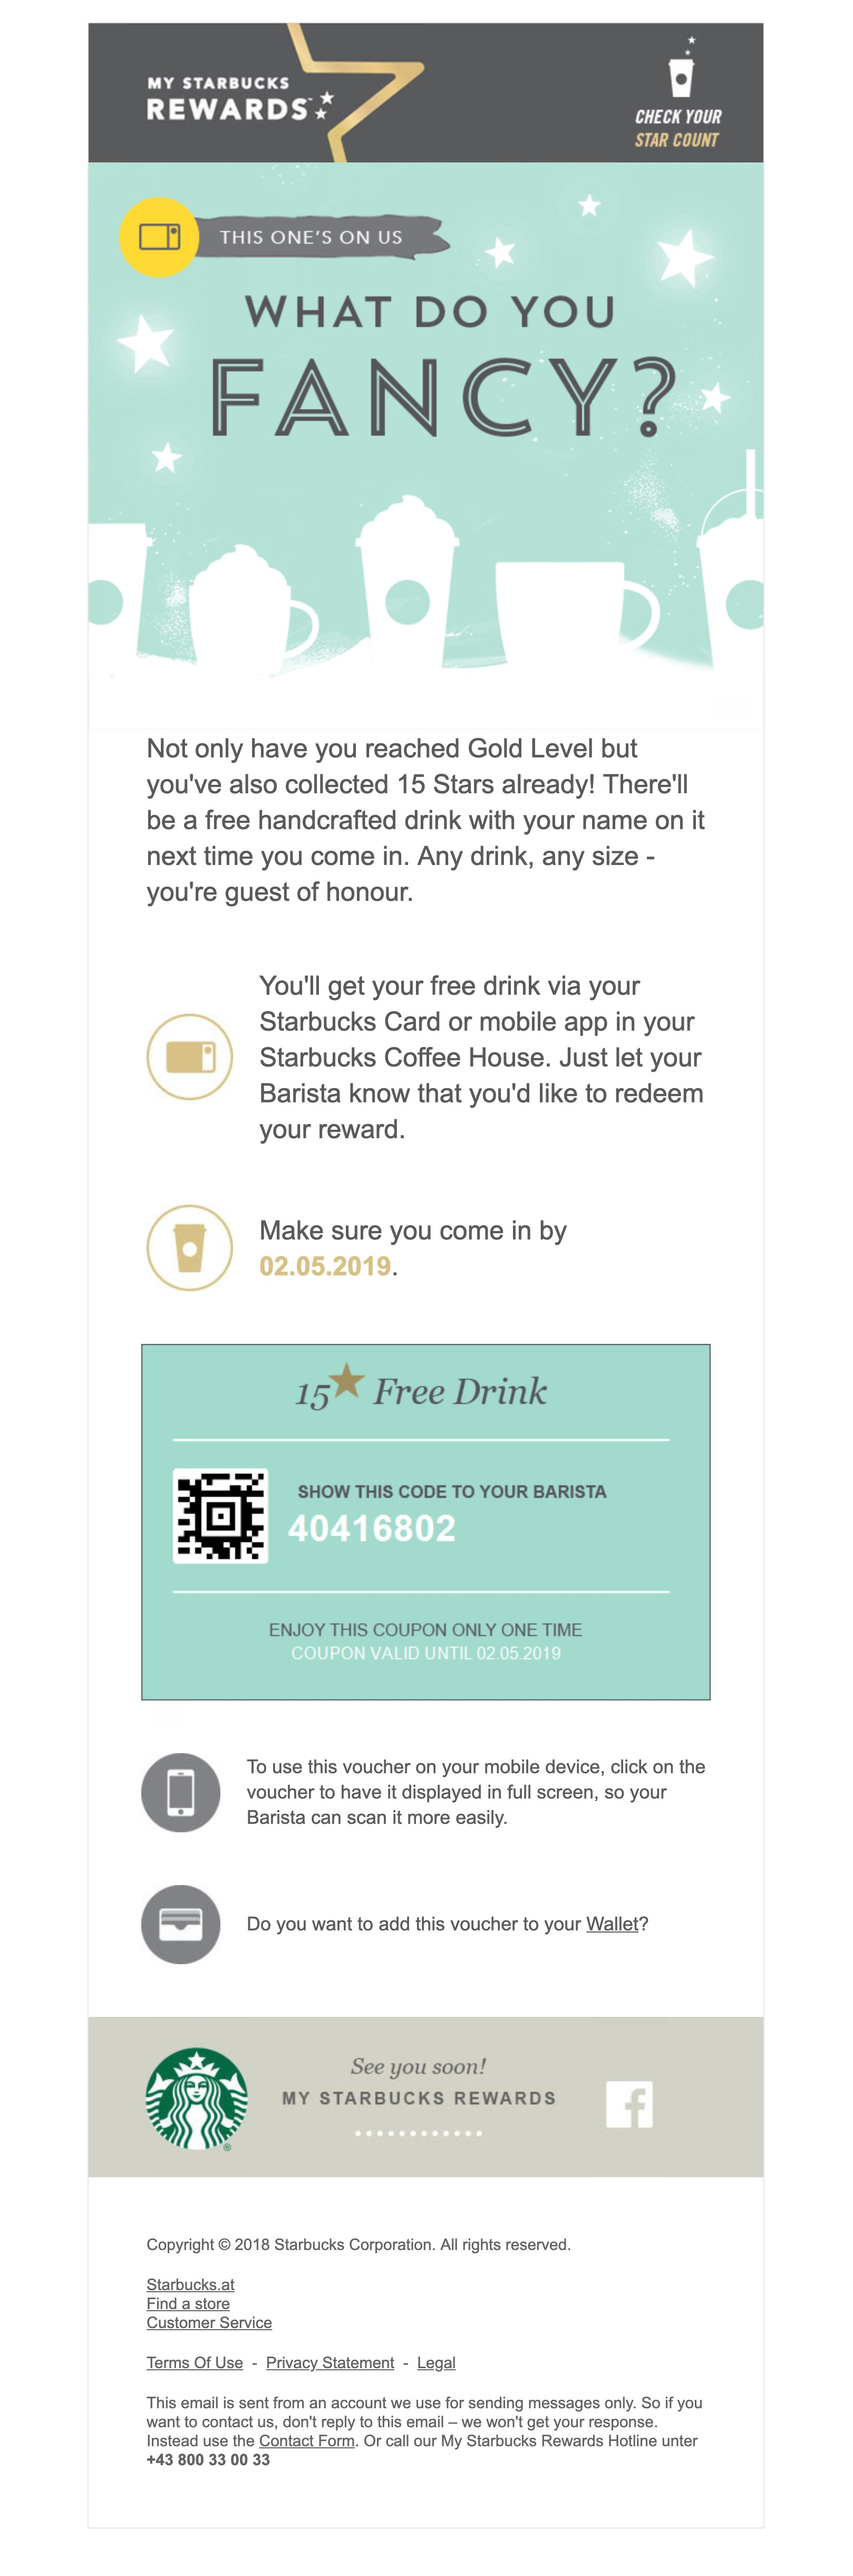 My Starbucks Rewards' coupon email campaign with a coupon expiration date